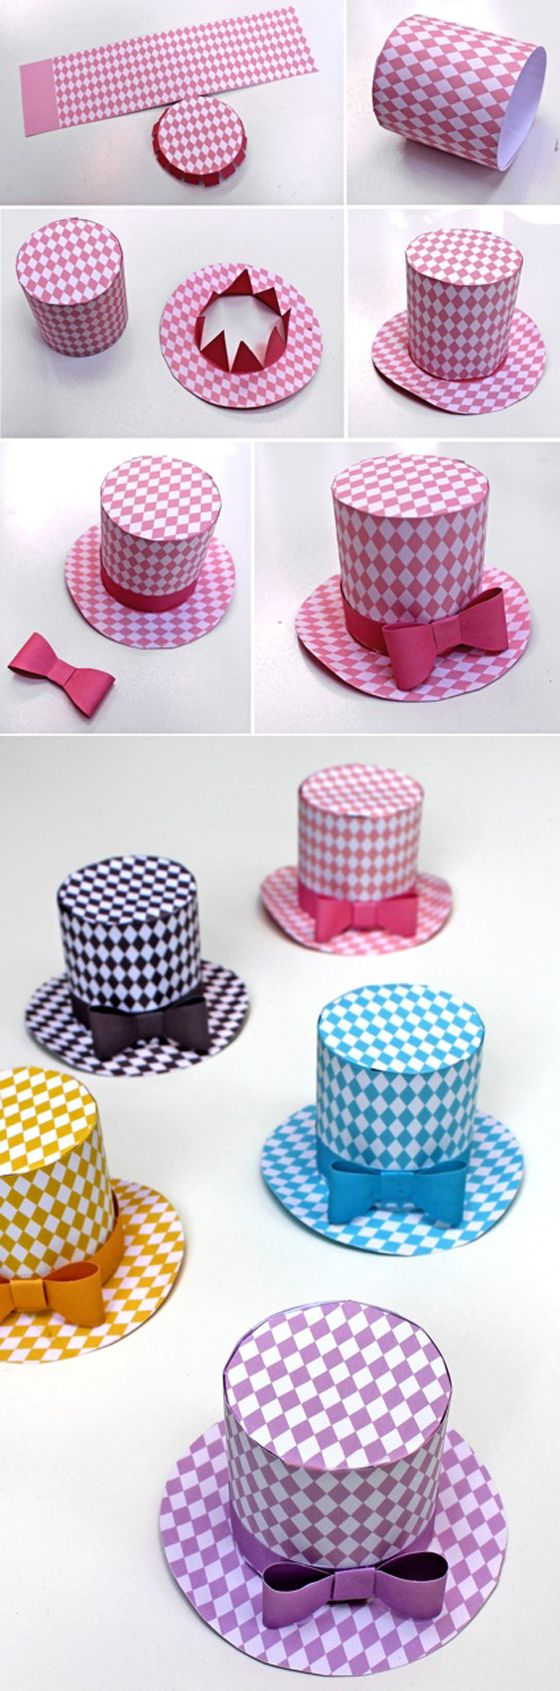 Make It: Paper Diamond Party Hats - Free Template & Tutorial #papercrafts